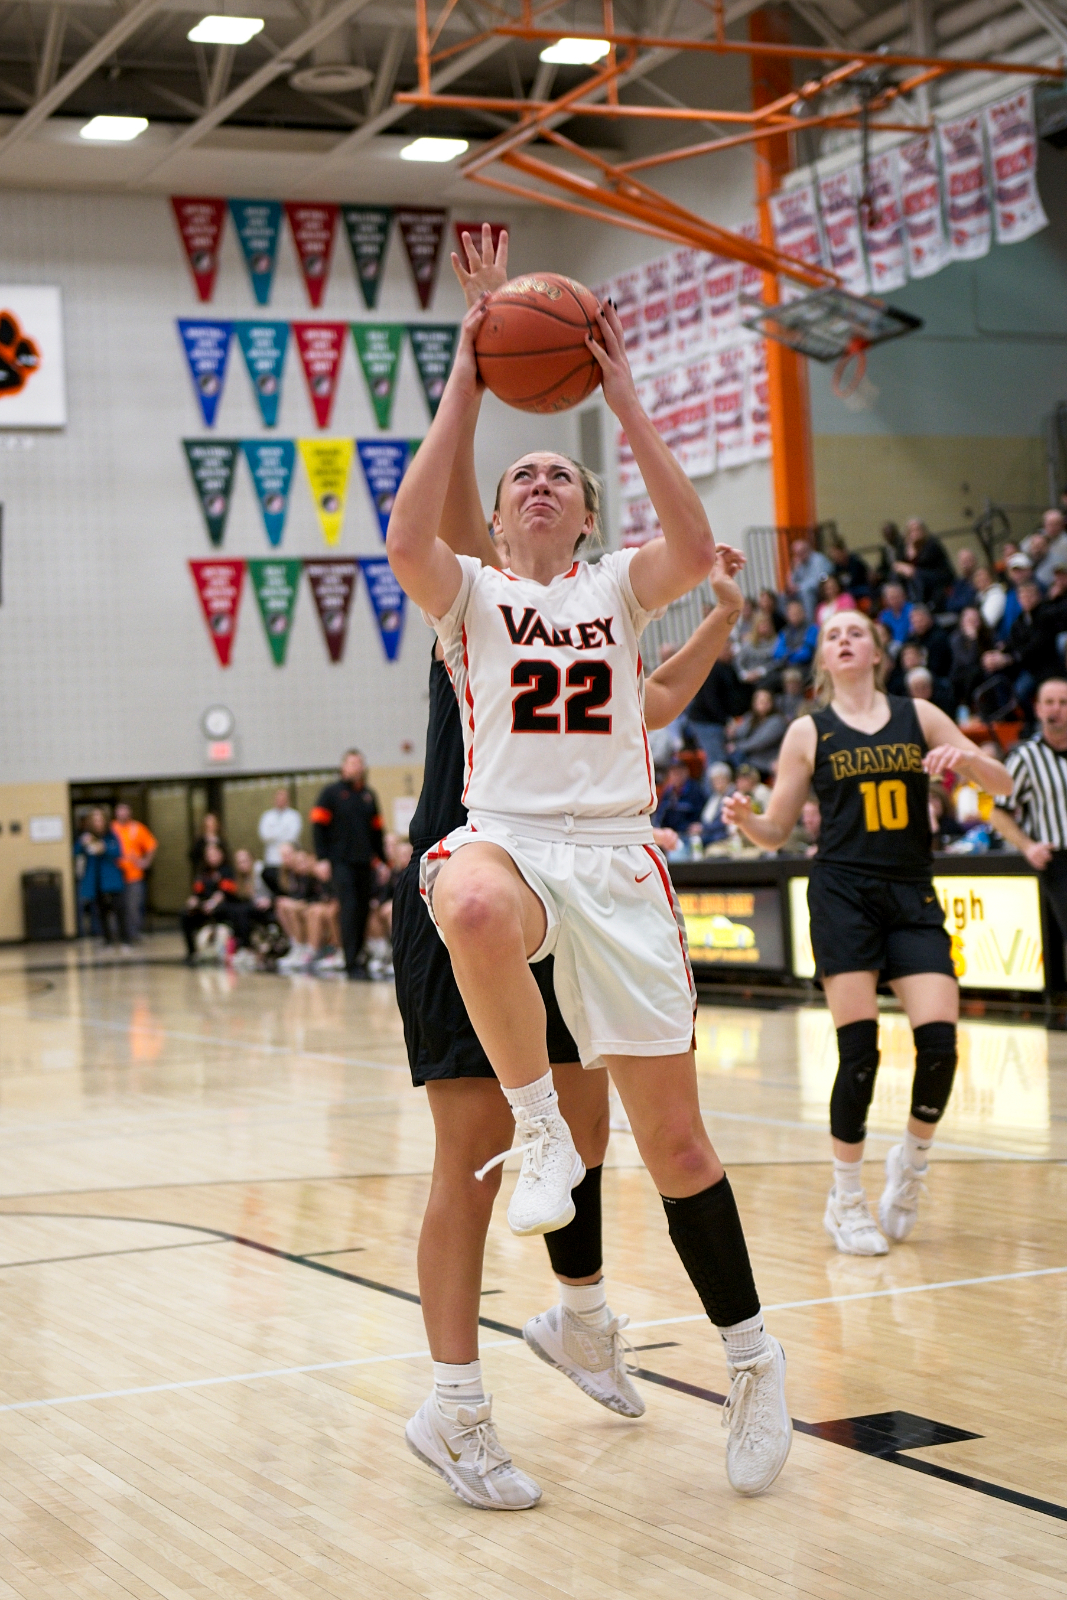 Valley Ends Season With OT Loss vs. Iowa City West